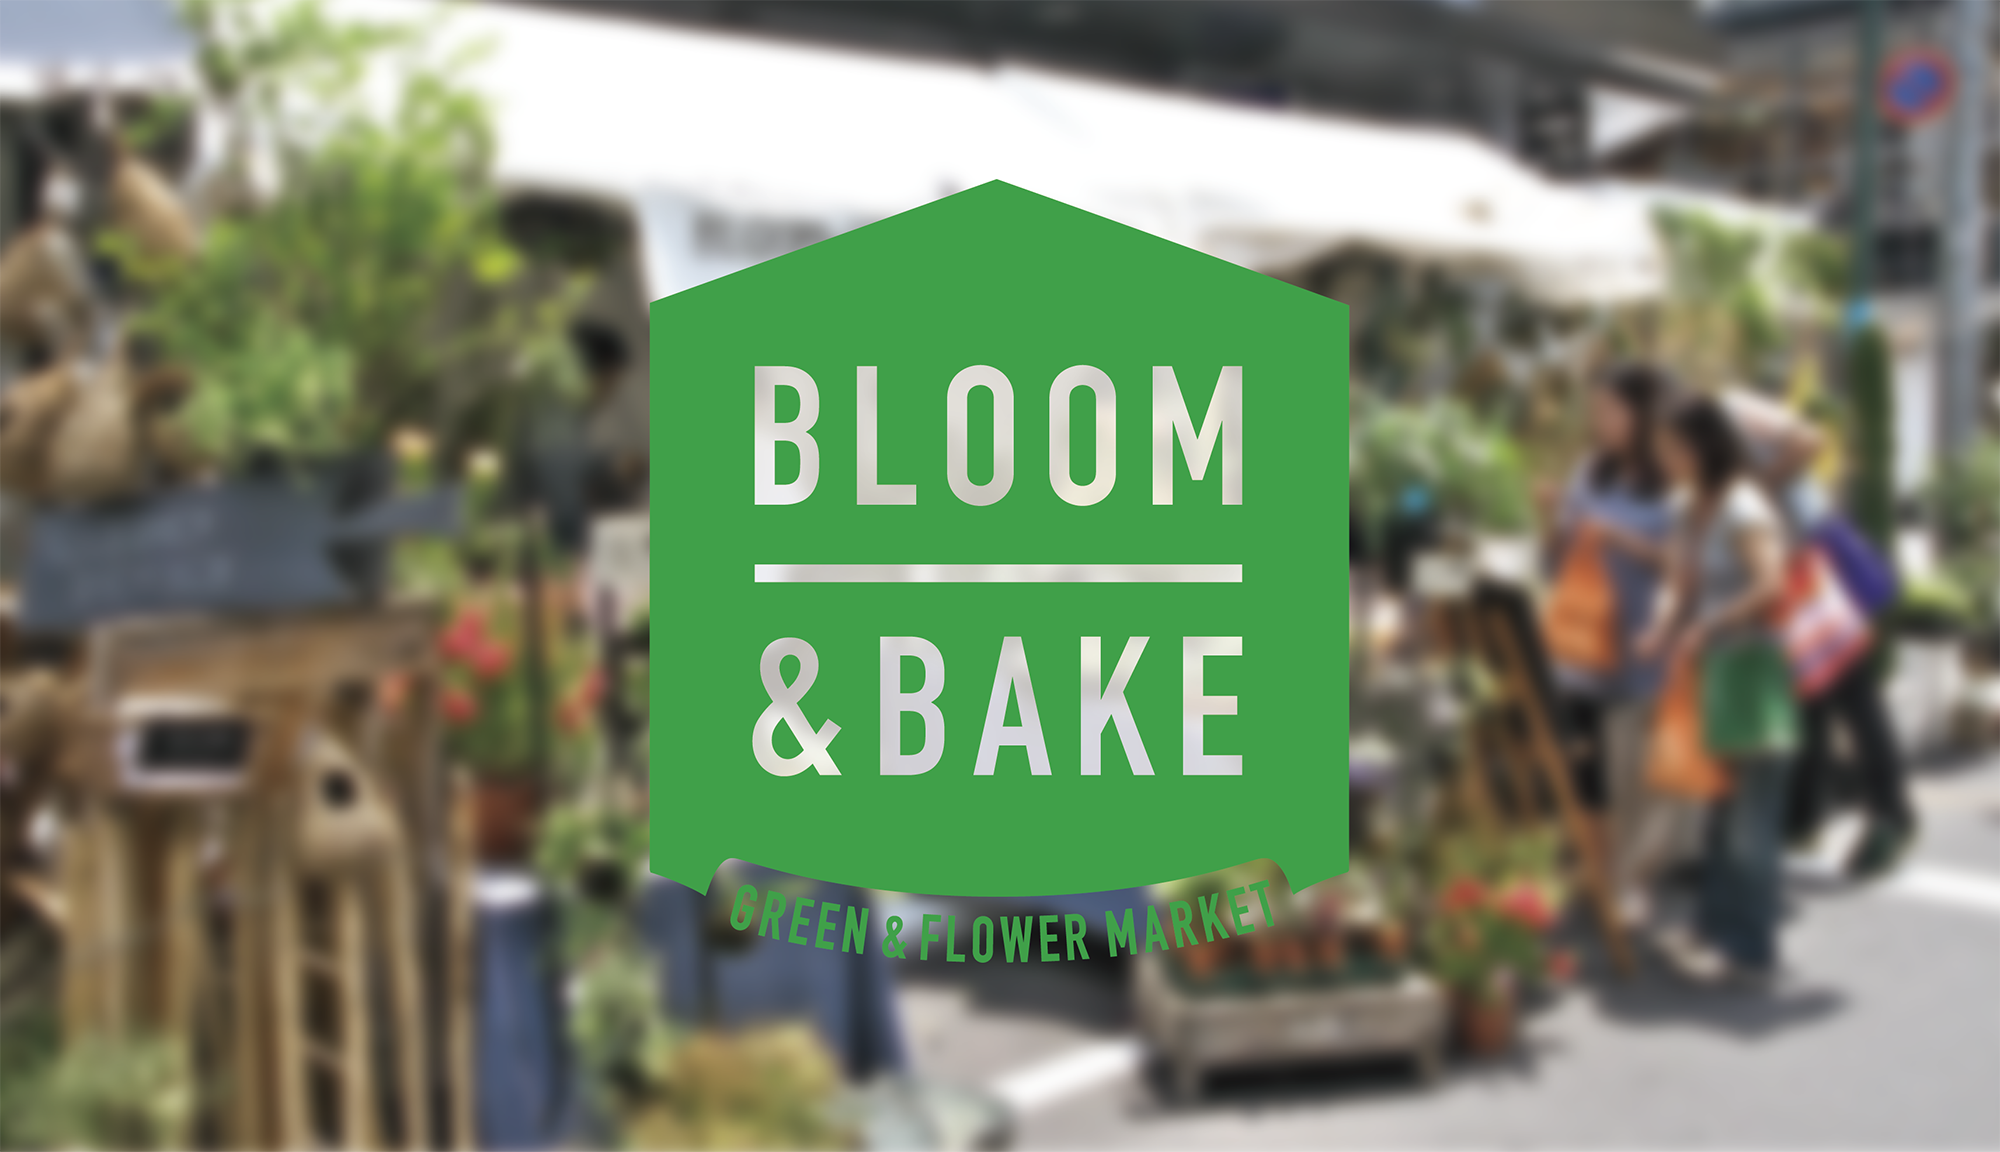 BLOOM AND BAKE